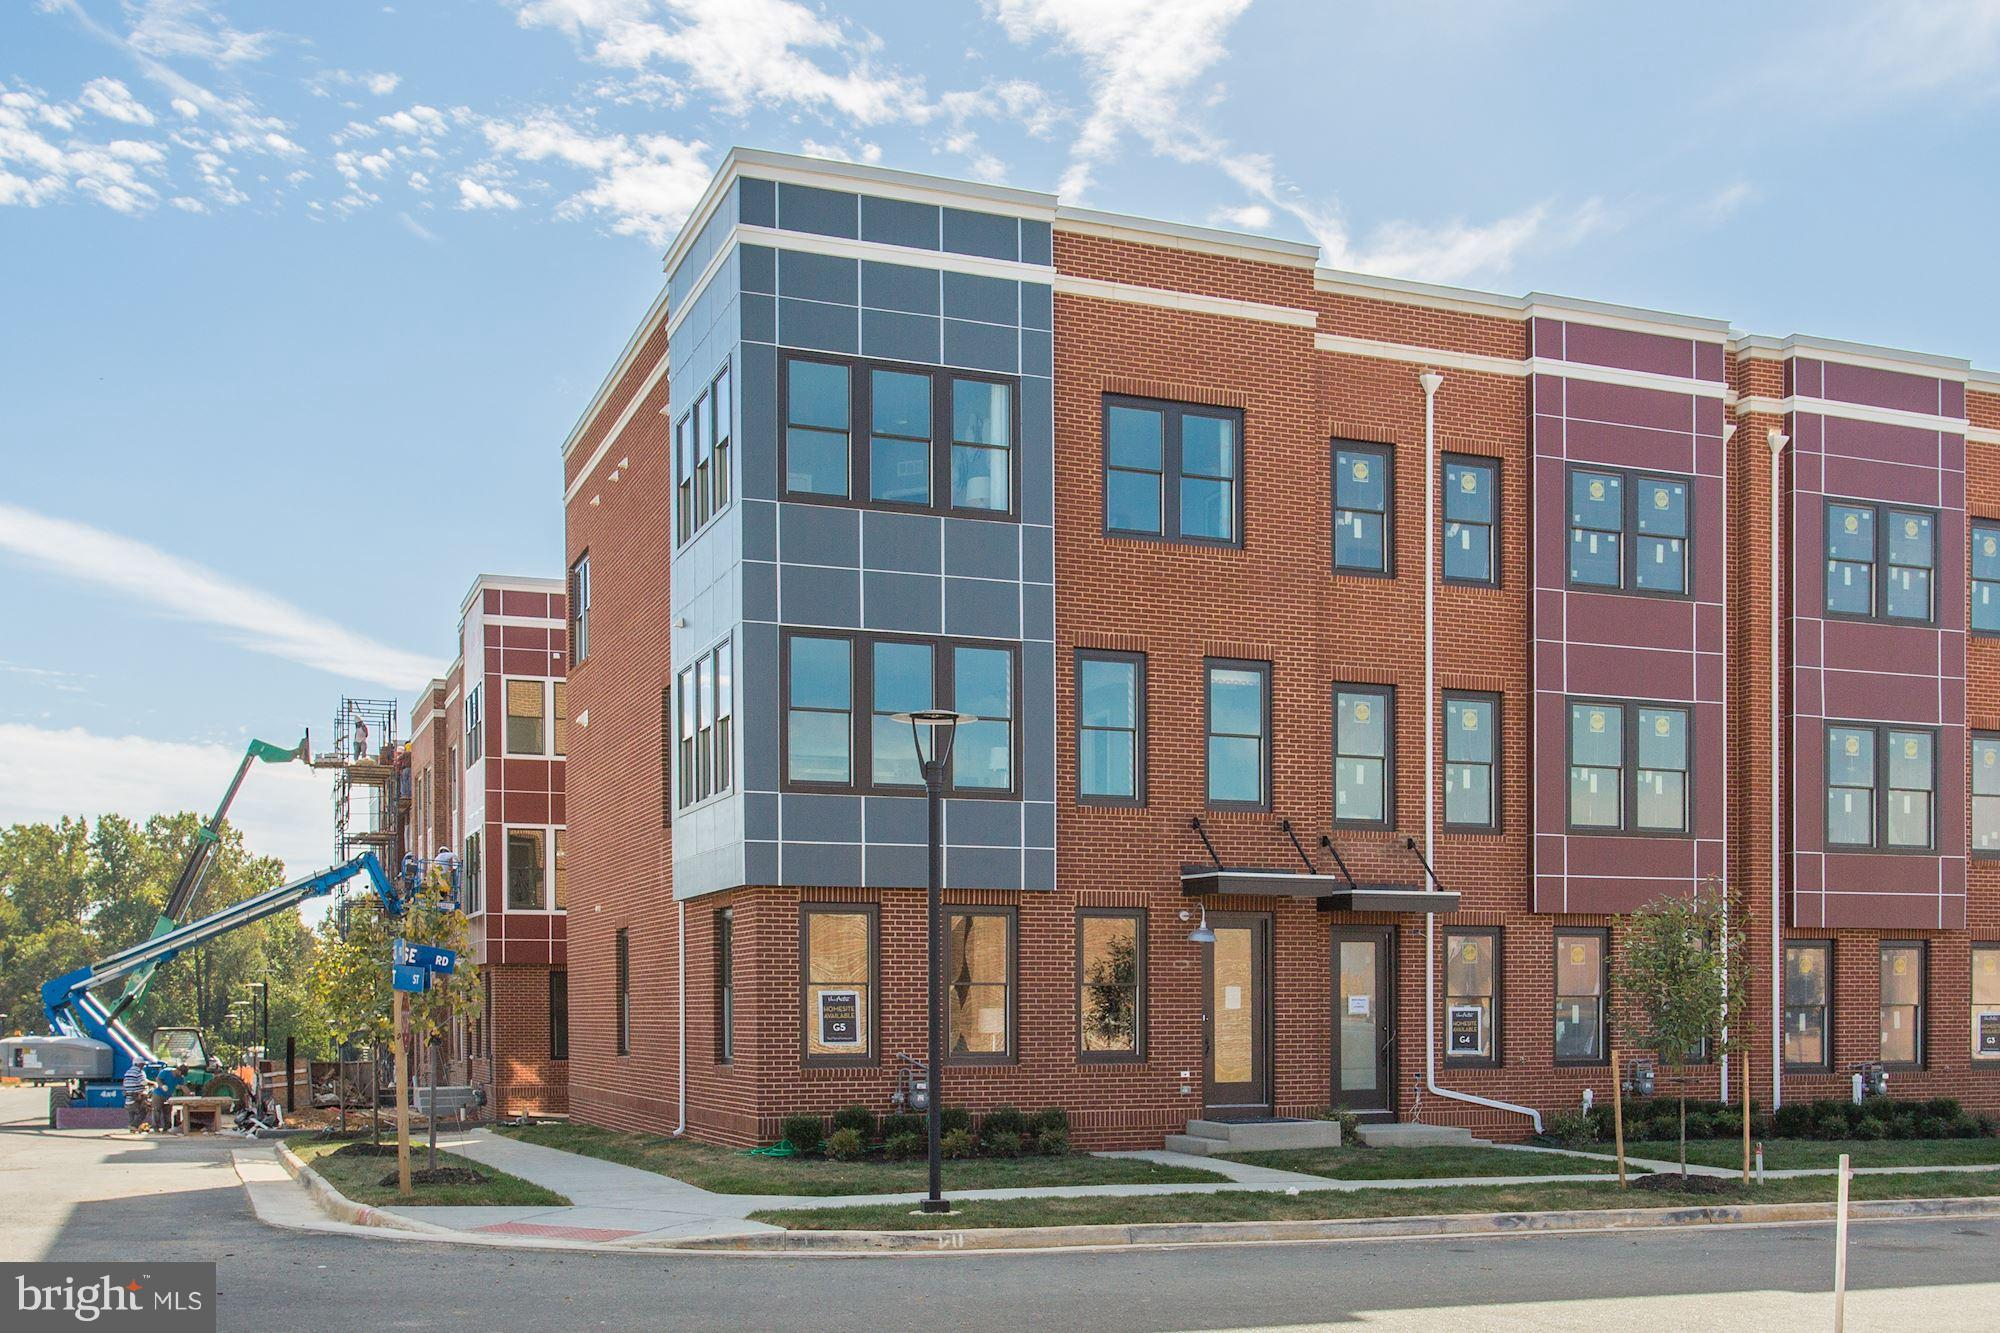 READY TO MOVE IN! BEAUTIFUL 4-LEVEL TOWNHOMES WITH ROOFTOP TERRACE AND FIREPLACE. FACING THE LIBERTY GREEN.